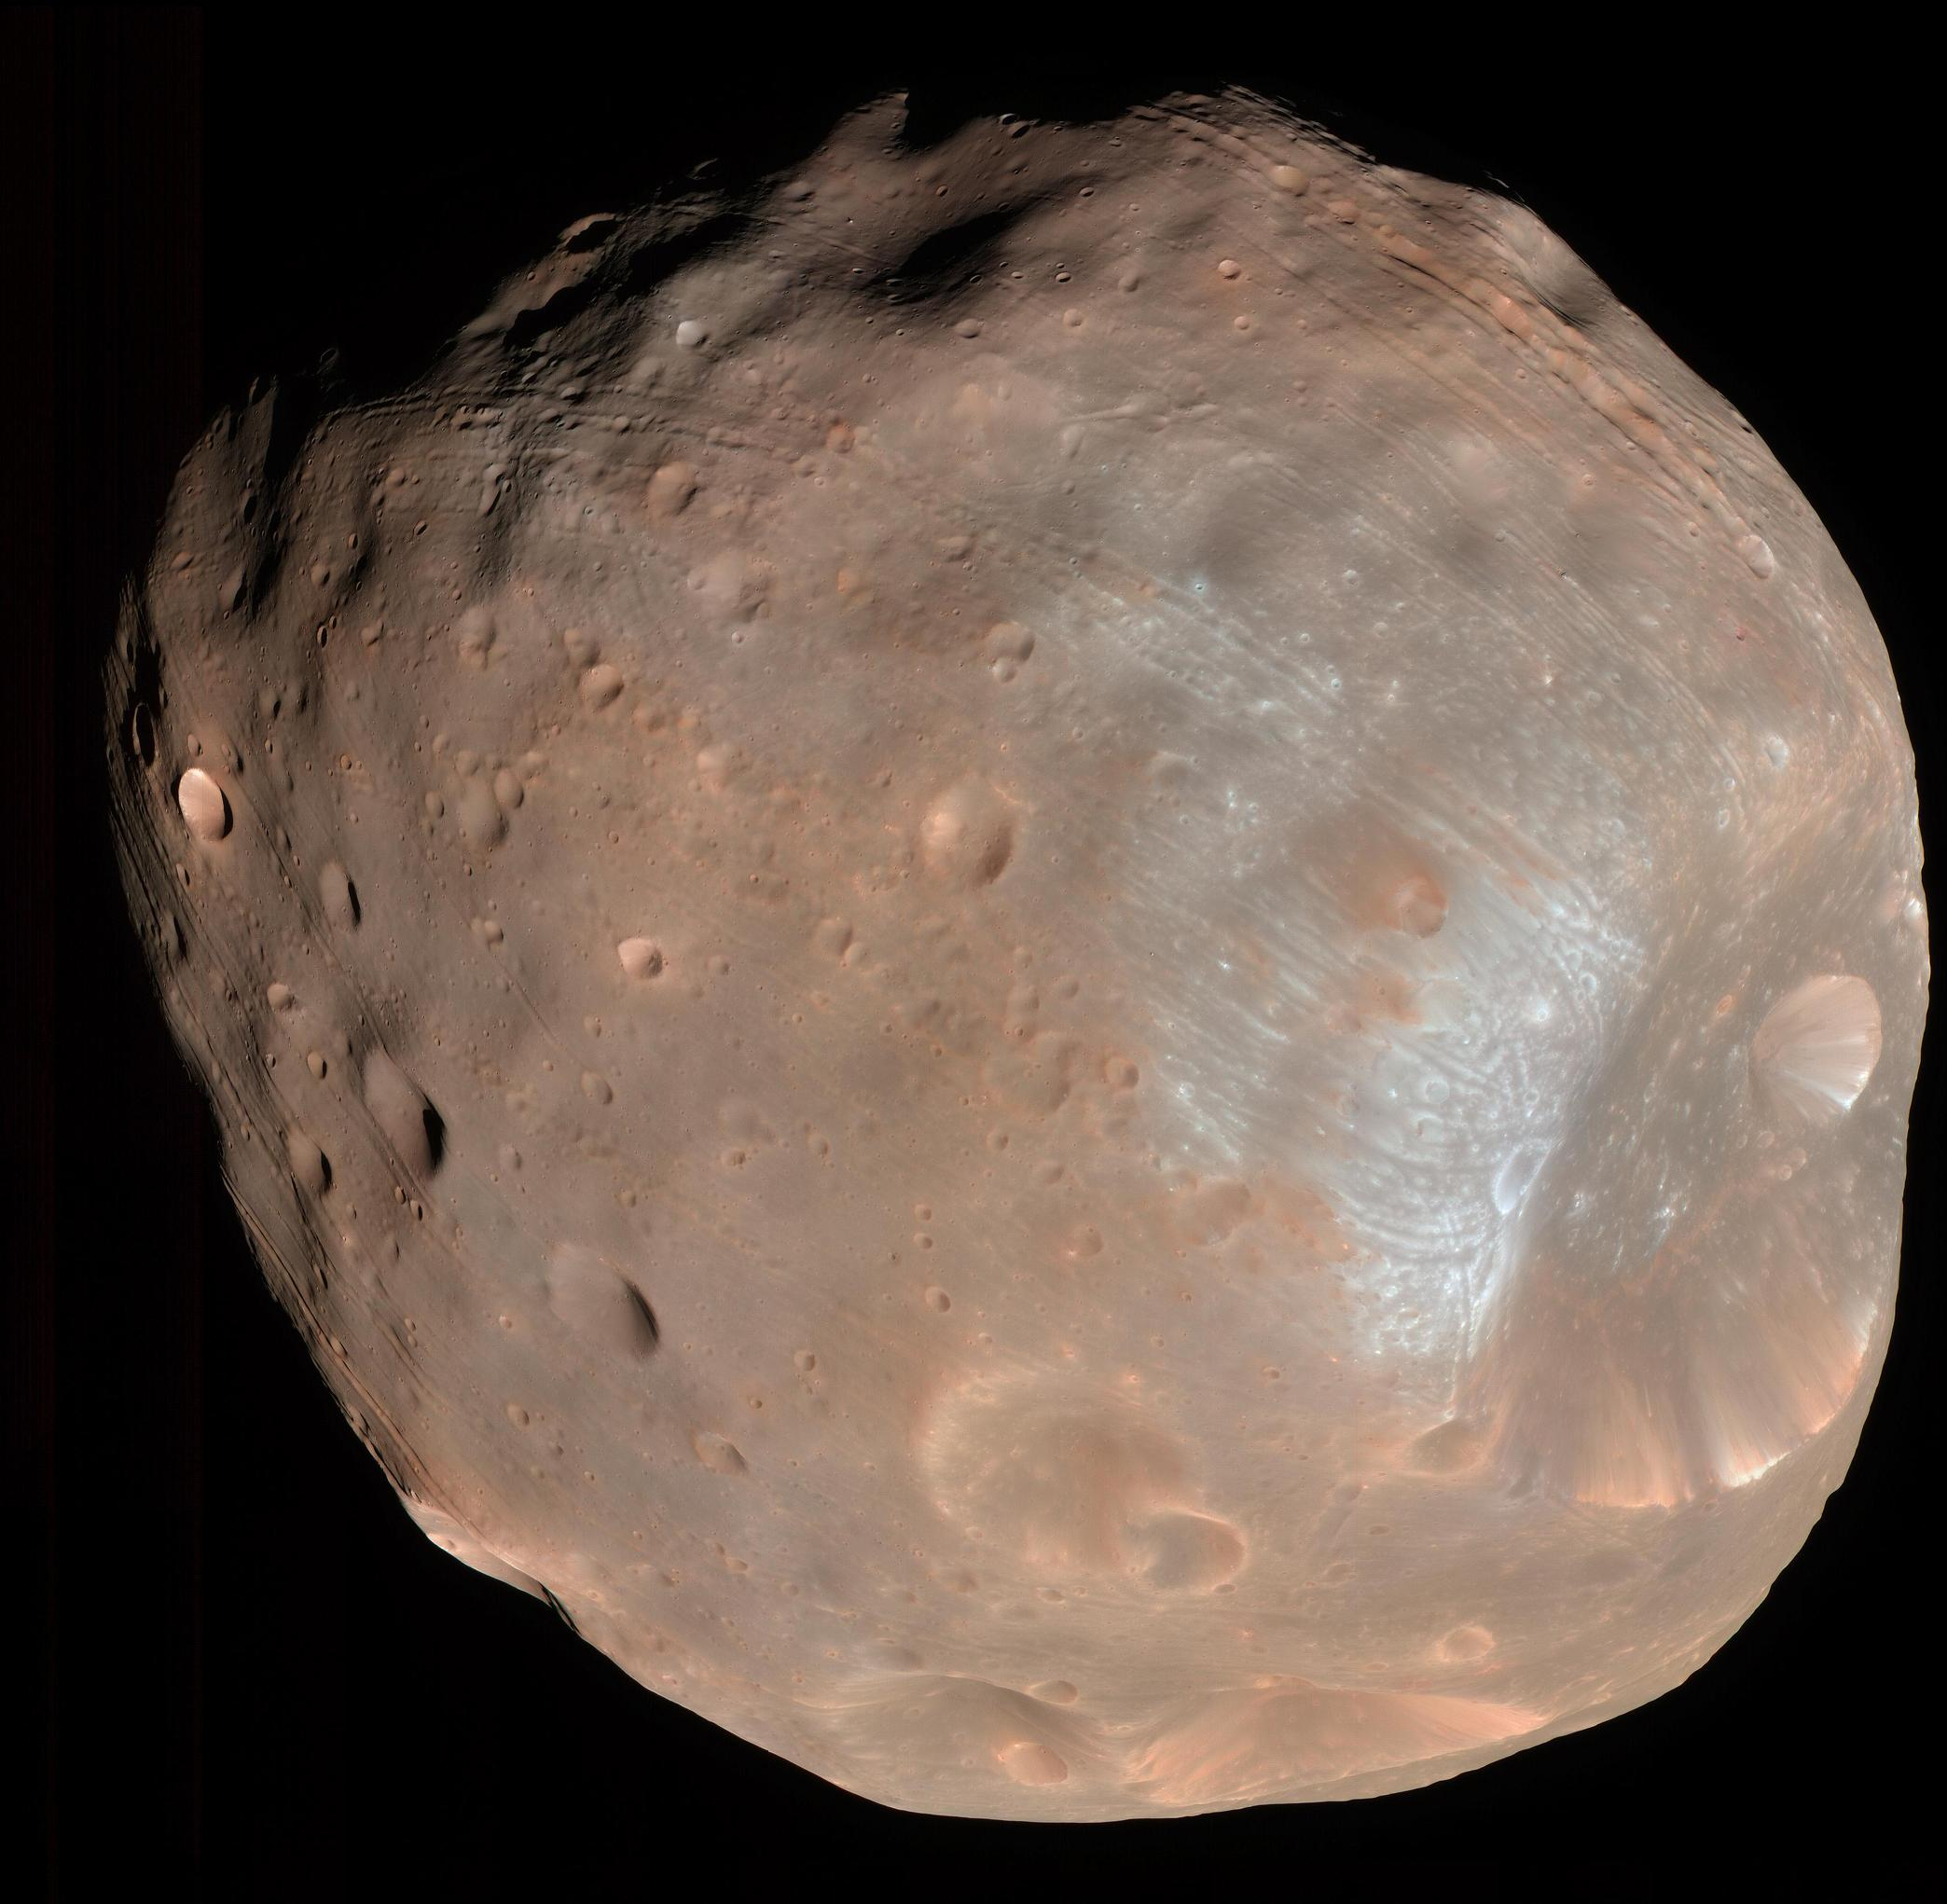 The High Resolution Imaging Science Experiment (HiRISE) camera on NASA's Mars Reconnaissance Orbiter took two images of the larger of Mars' two moons, Phobos, within 10 minutes of each other on March 23, 2008.